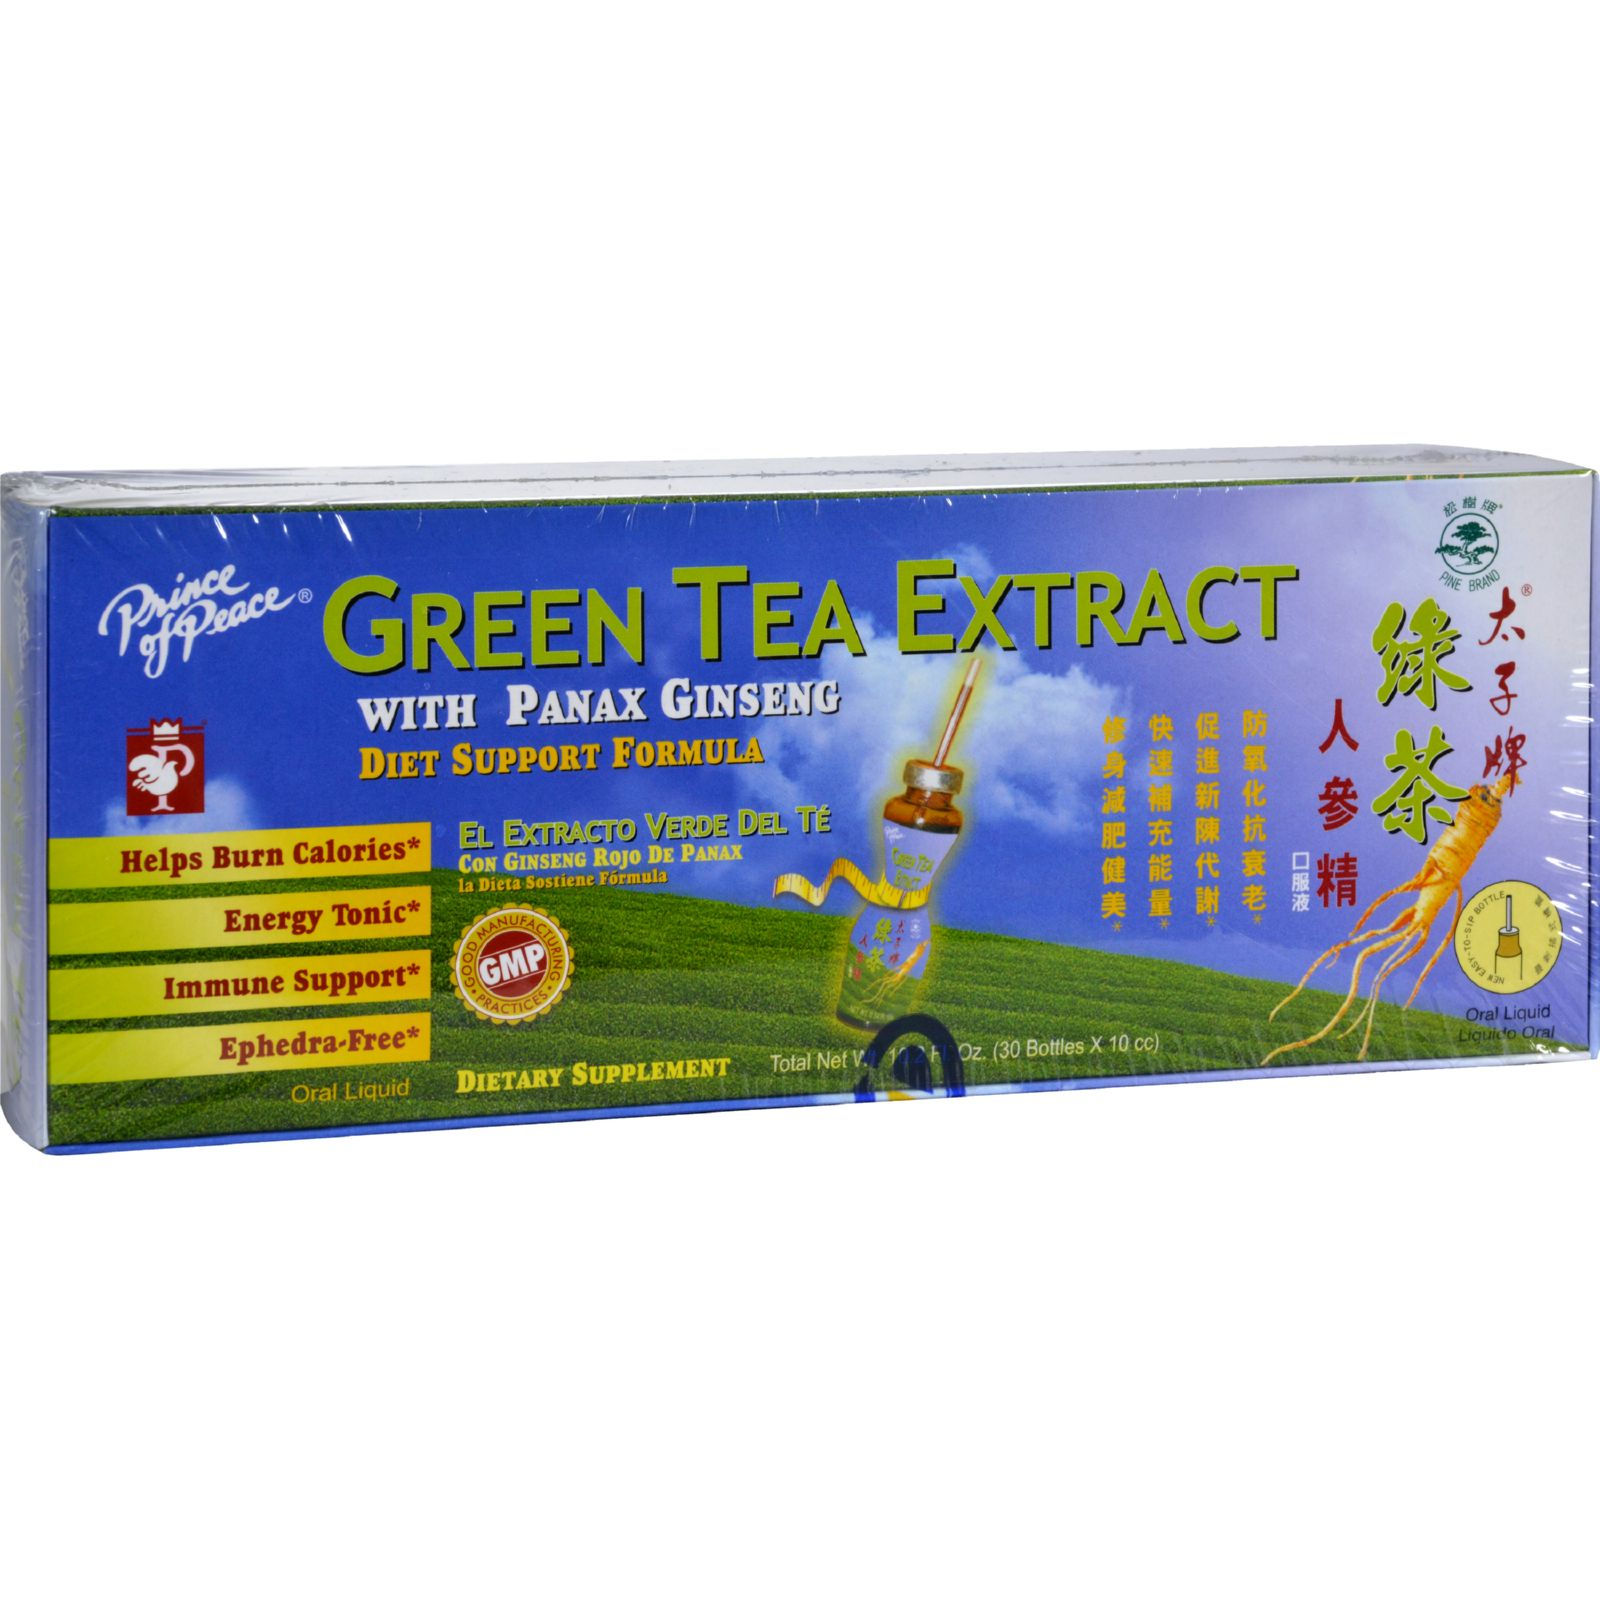 Prince of Peace Green Tea Extract with Panax Ginseng - 10.2 fl oz